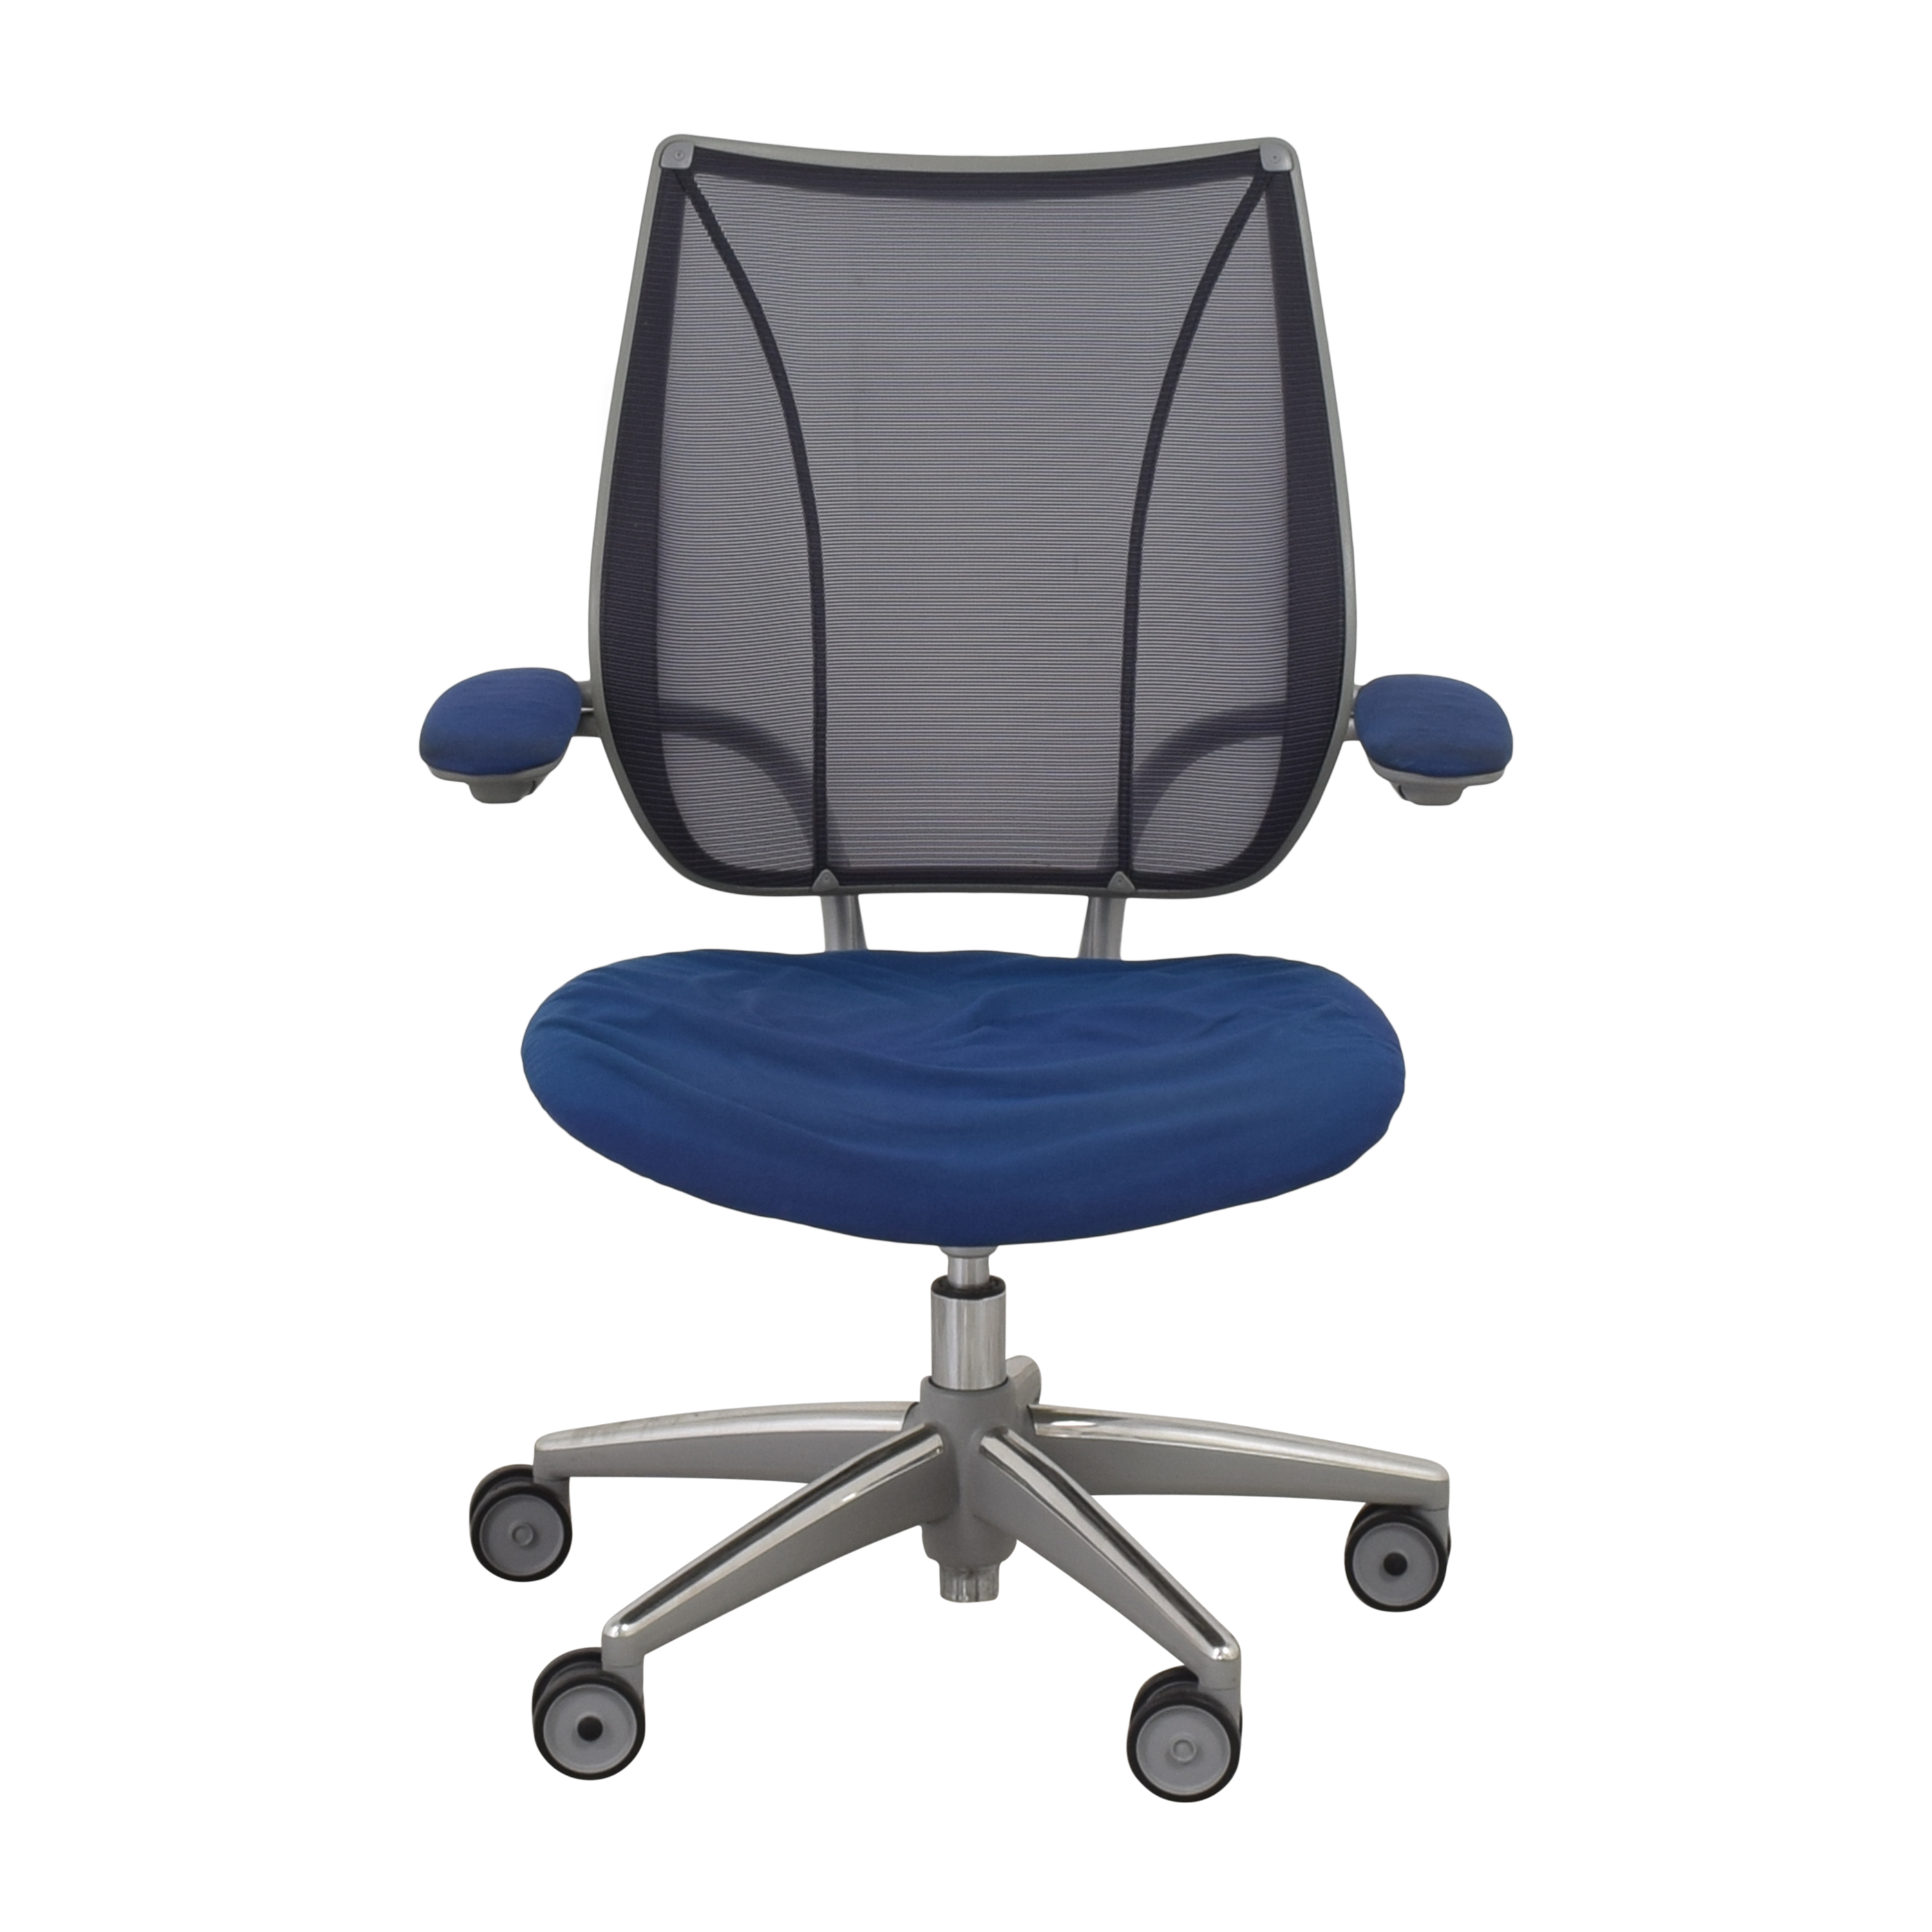 Humanscale Humanscale Liberty Swivel Chair Chairs